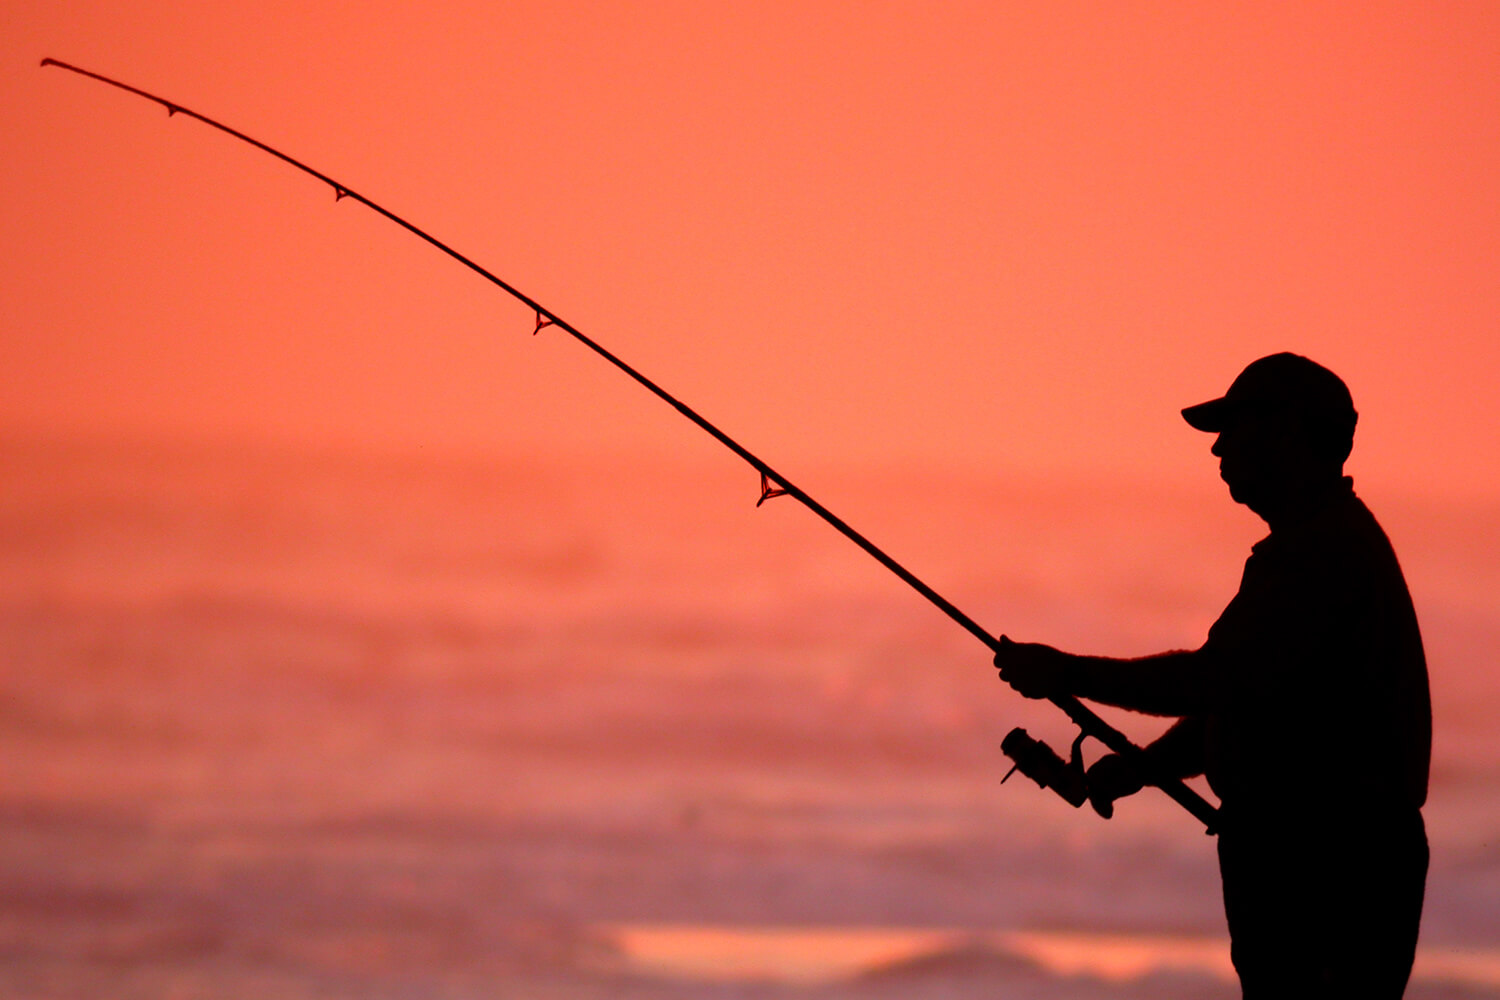 A man goes fishing against the sunset